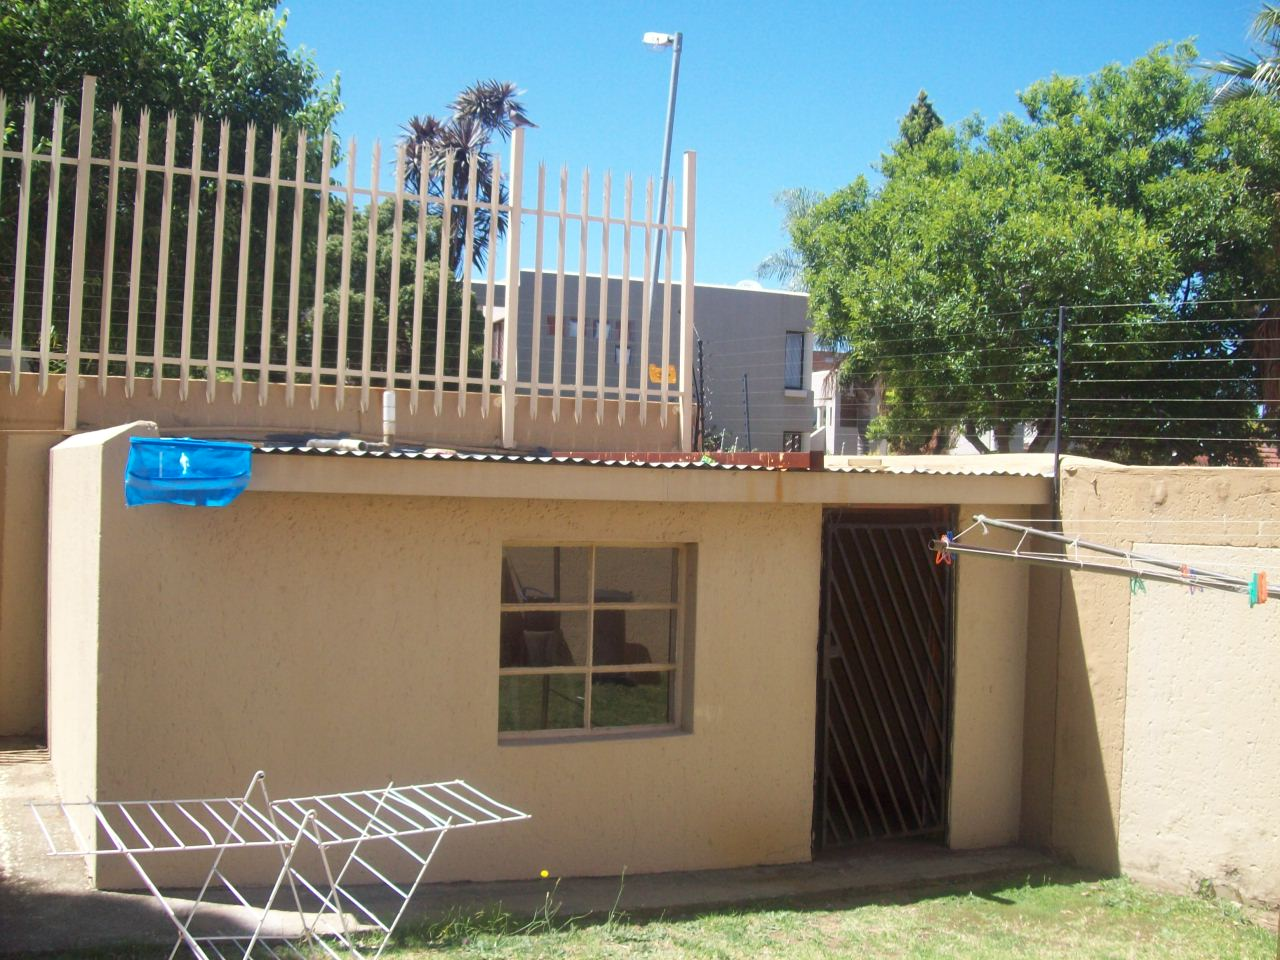 3 Bedroom Townhouse for sale in Bassonia ENT0071278 : photo#55